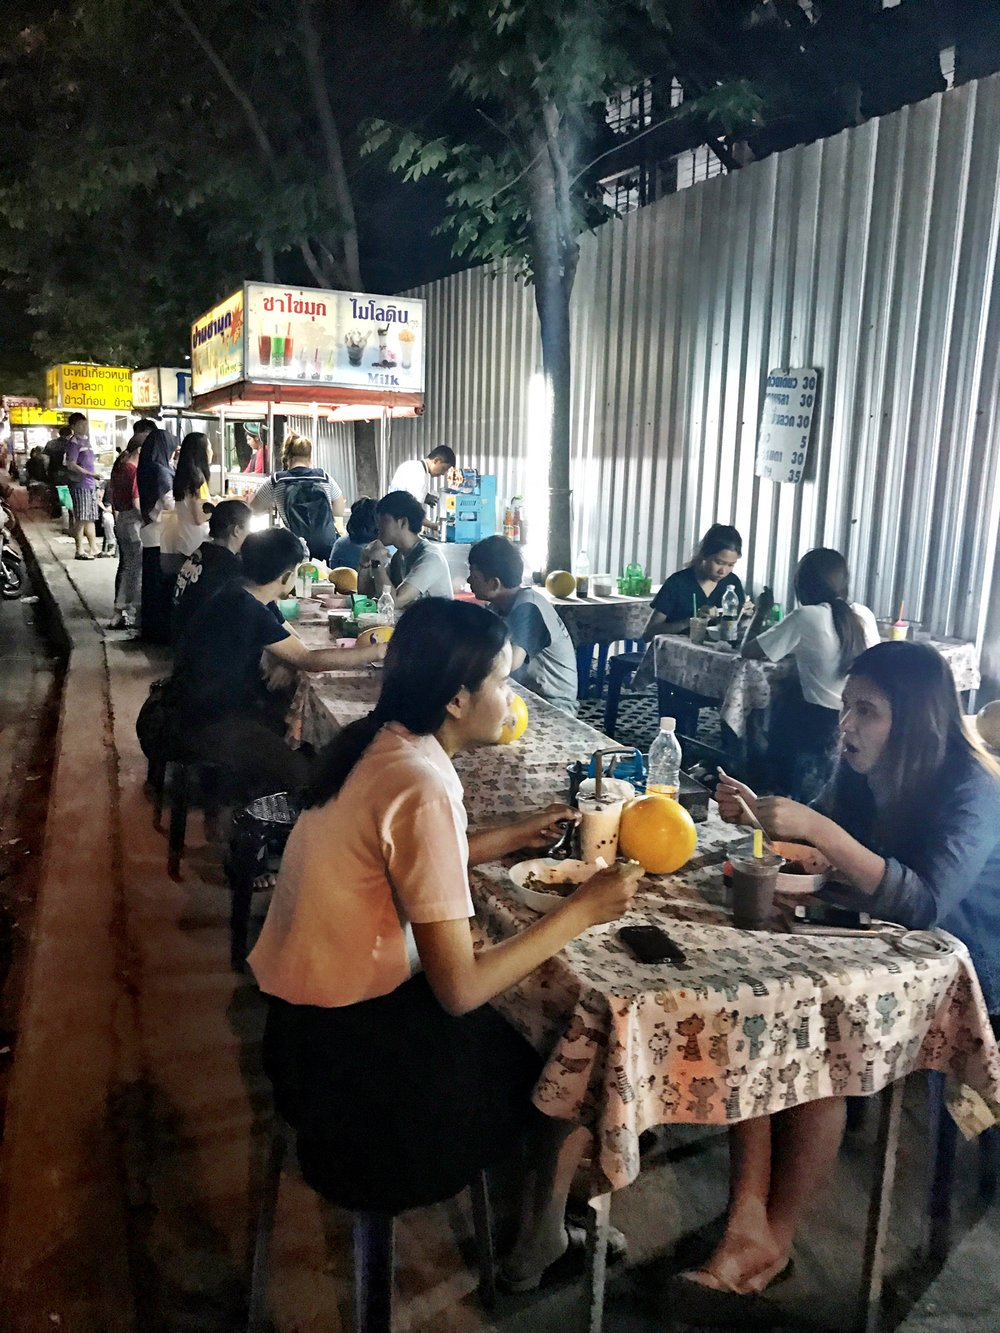 The street food found on Suthep Road by Chiang Mai University is no frills — but tasty